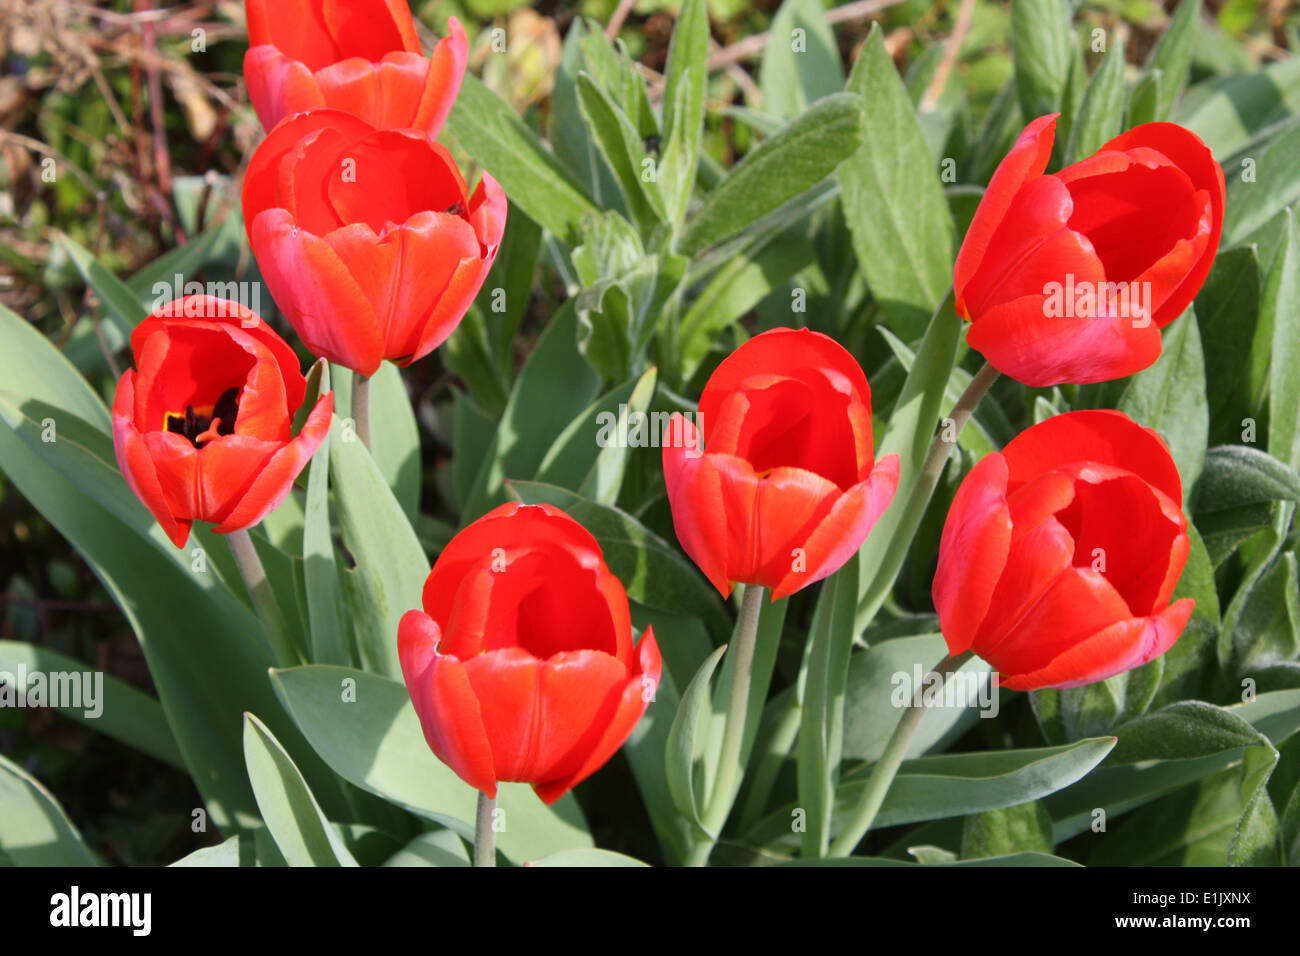 Red tulips flowers in spring season Stock Photo